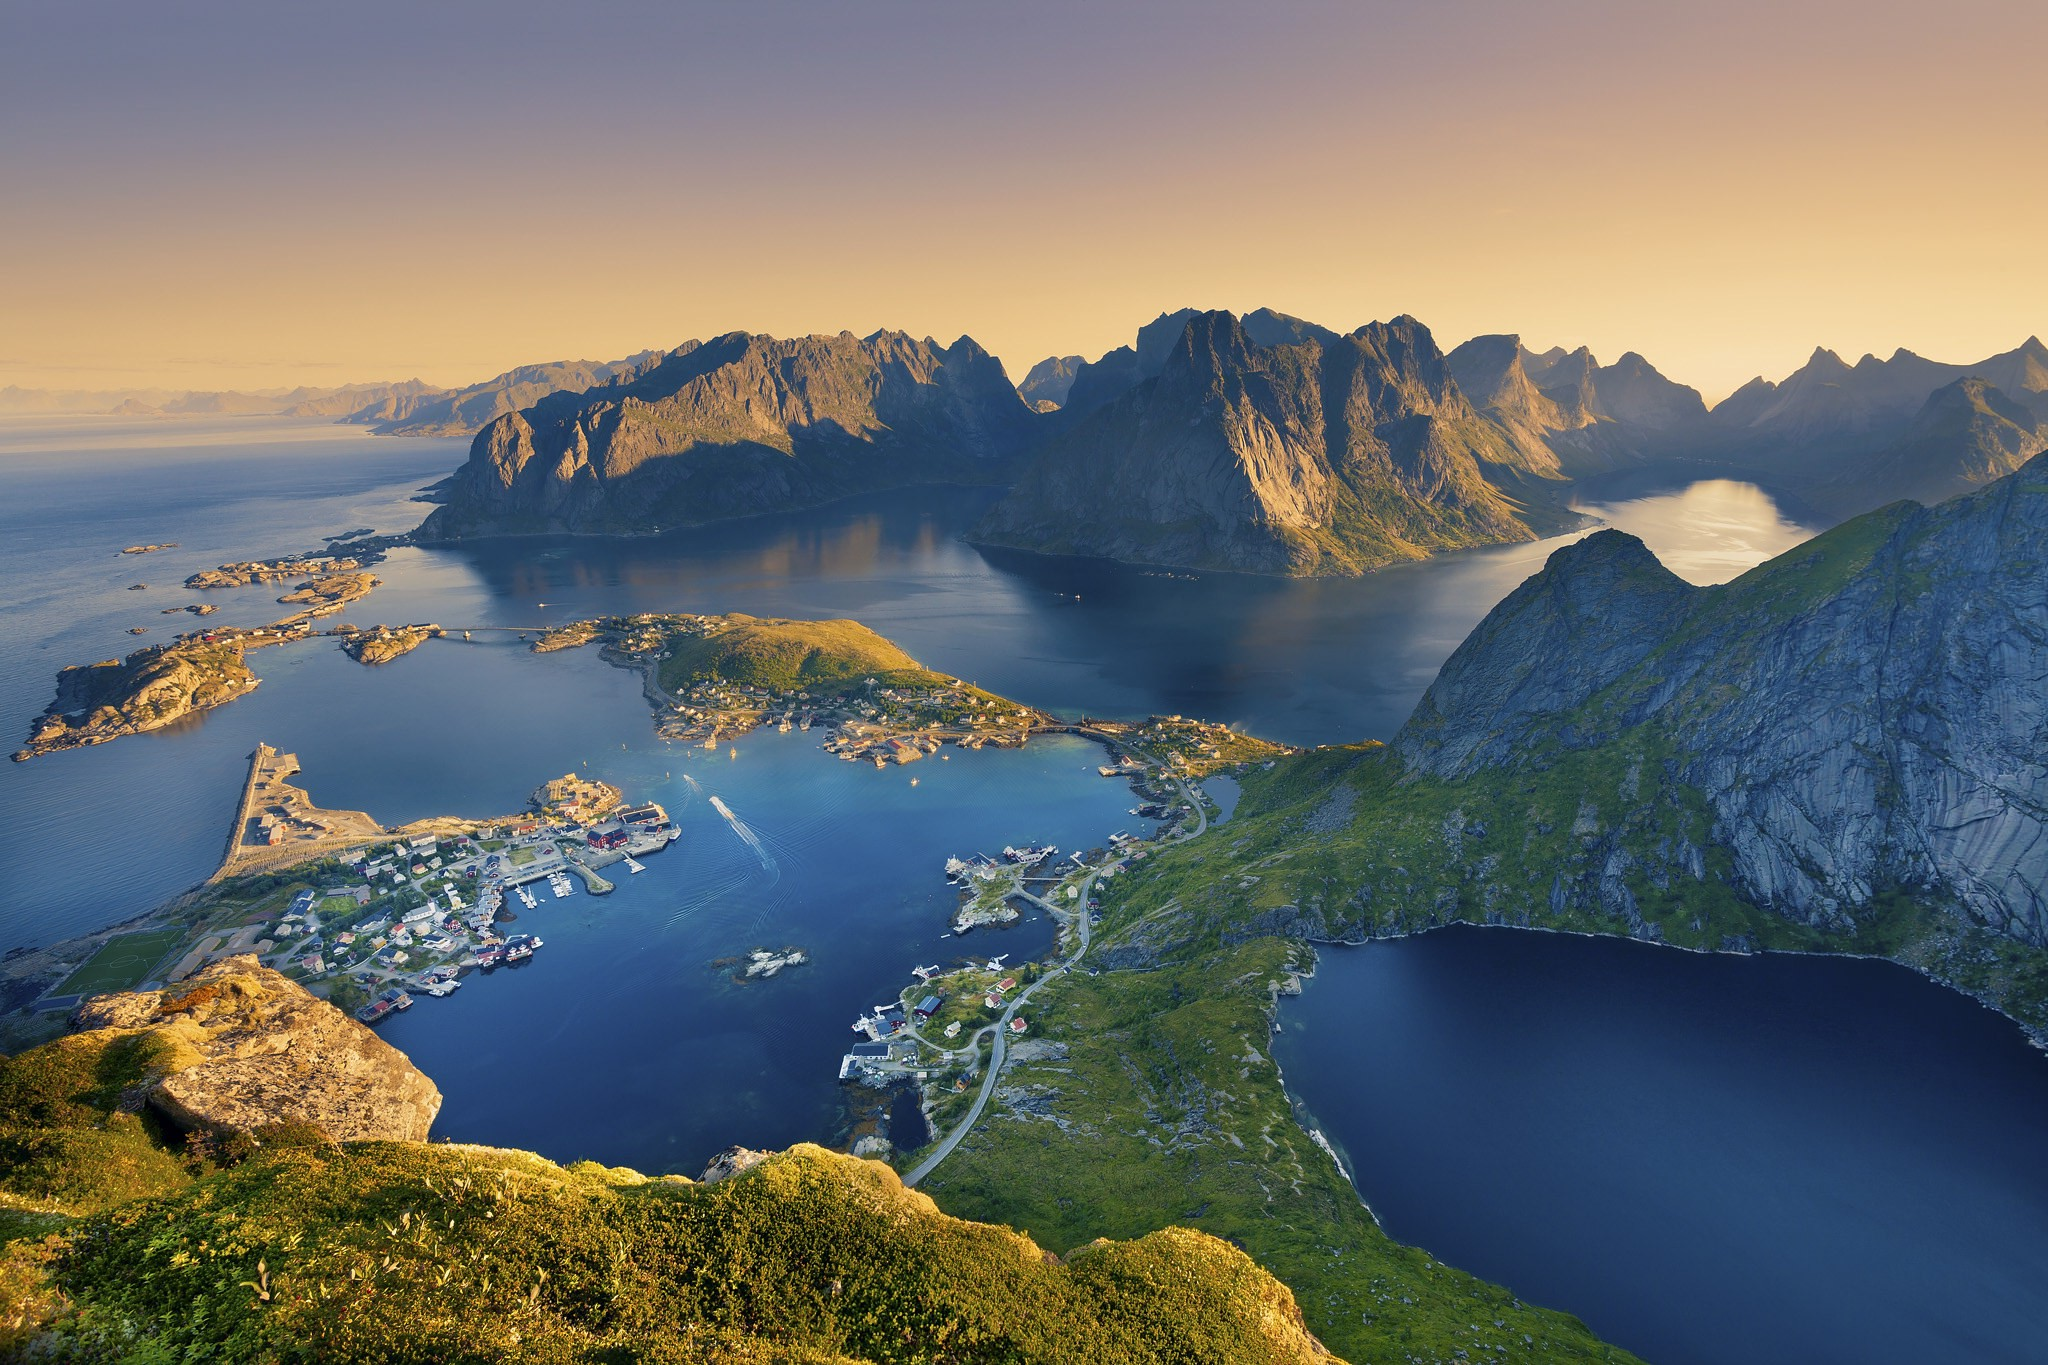 Full Hd 3d Wallpapers 1920x1080 Free Download For Mobile Landscape Norway Lofoten Nature Bay Europe Mountain